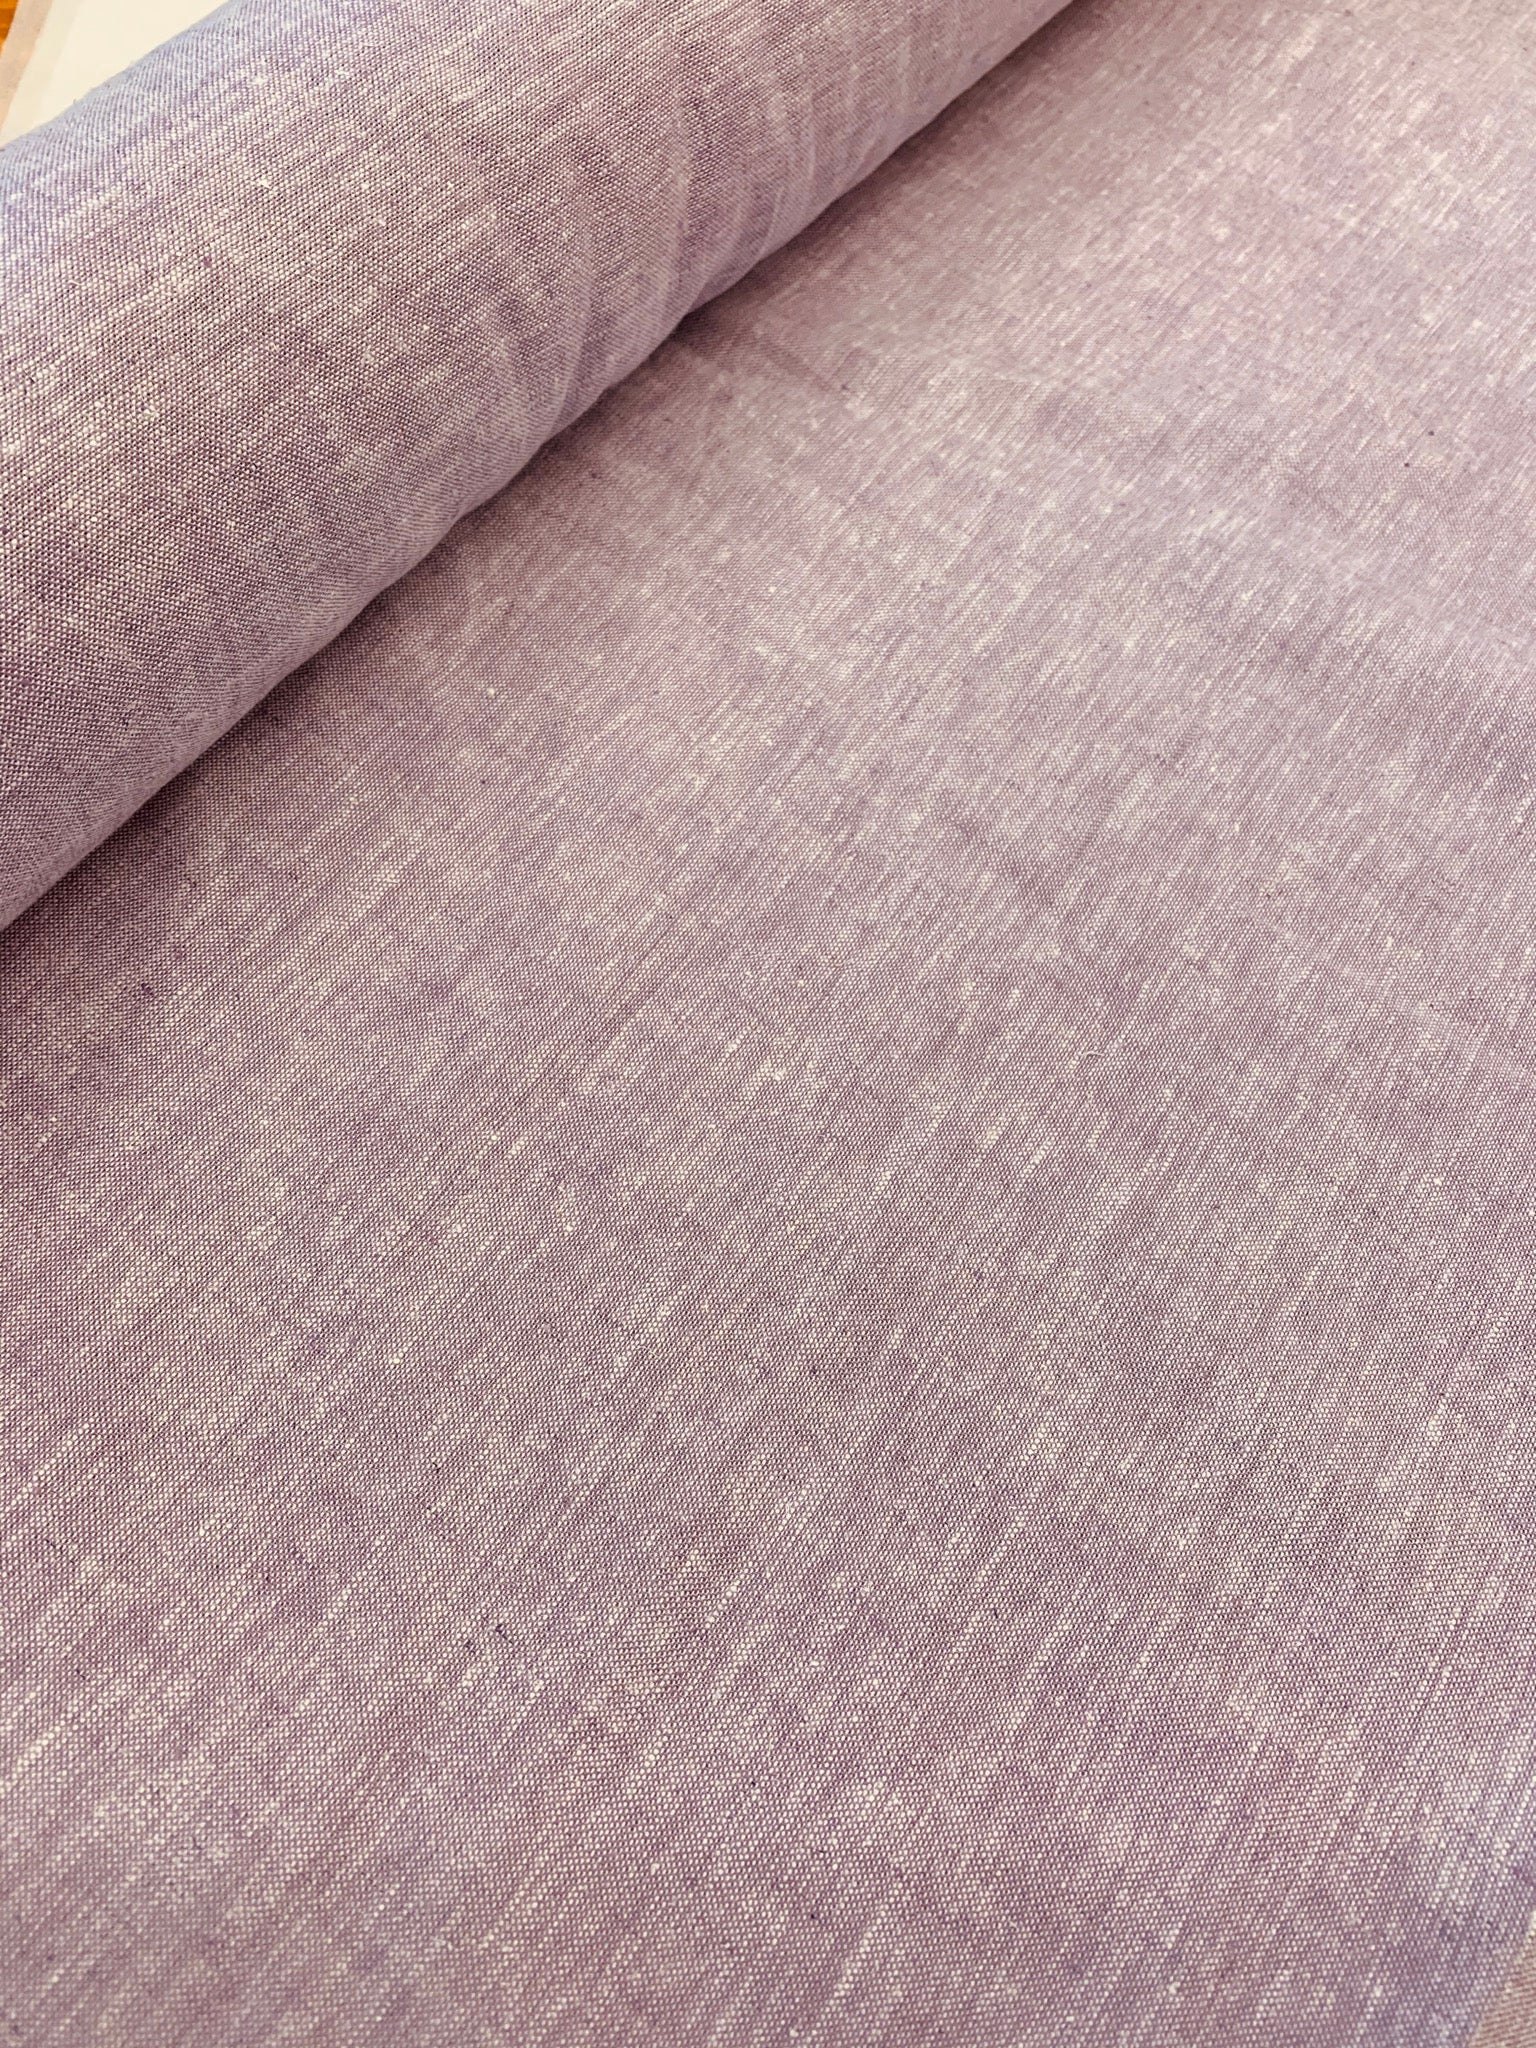 Linen/cotton yarn dye medium weight cloth: Lilac